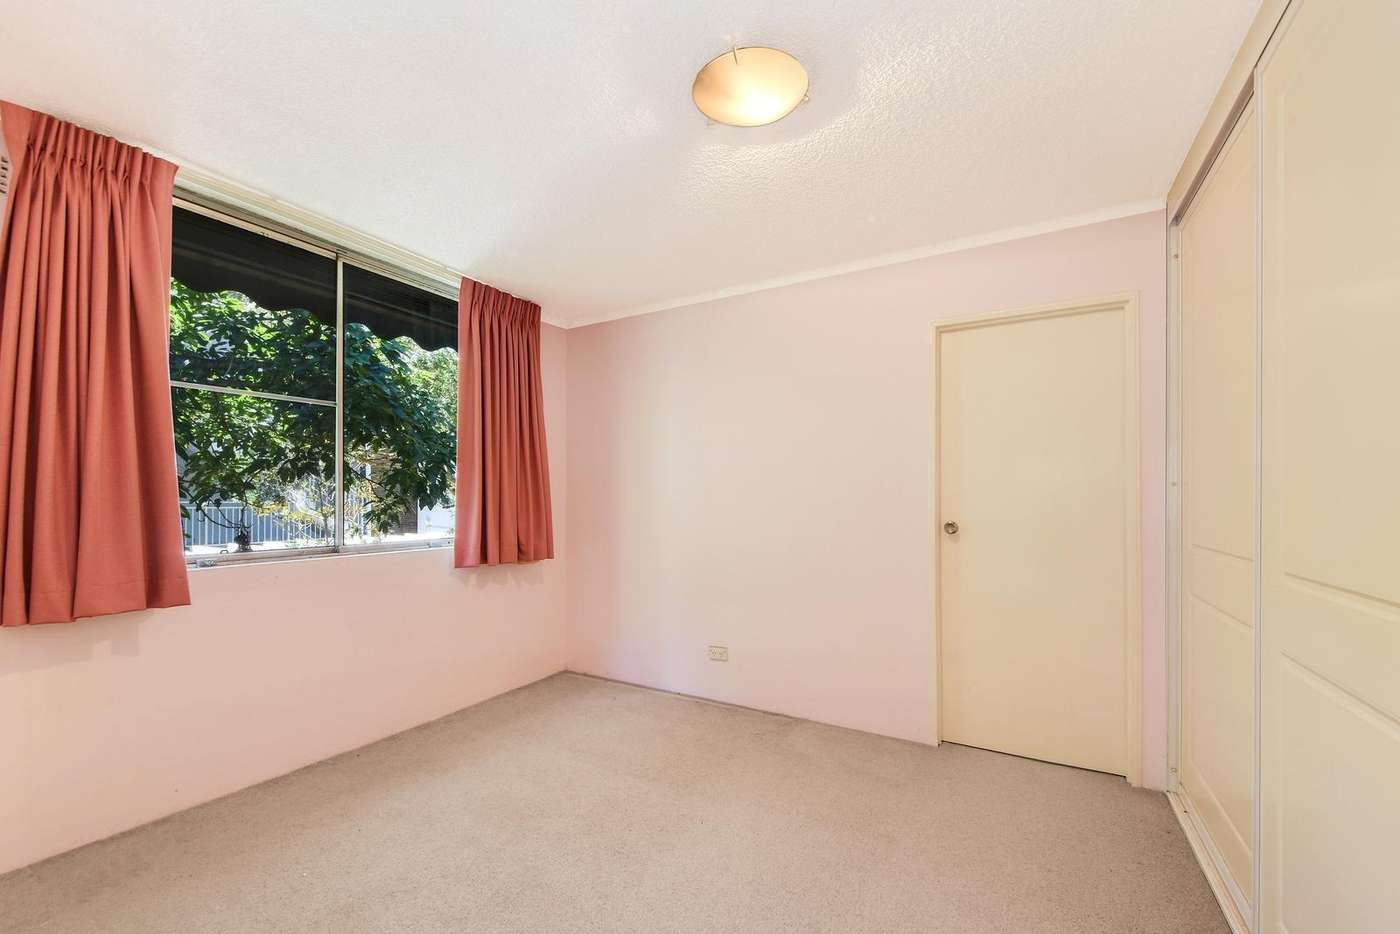 Sixth view of Homely apartment listing, 20/400 Mowbray Road West, Lane Cove North NSW 2066